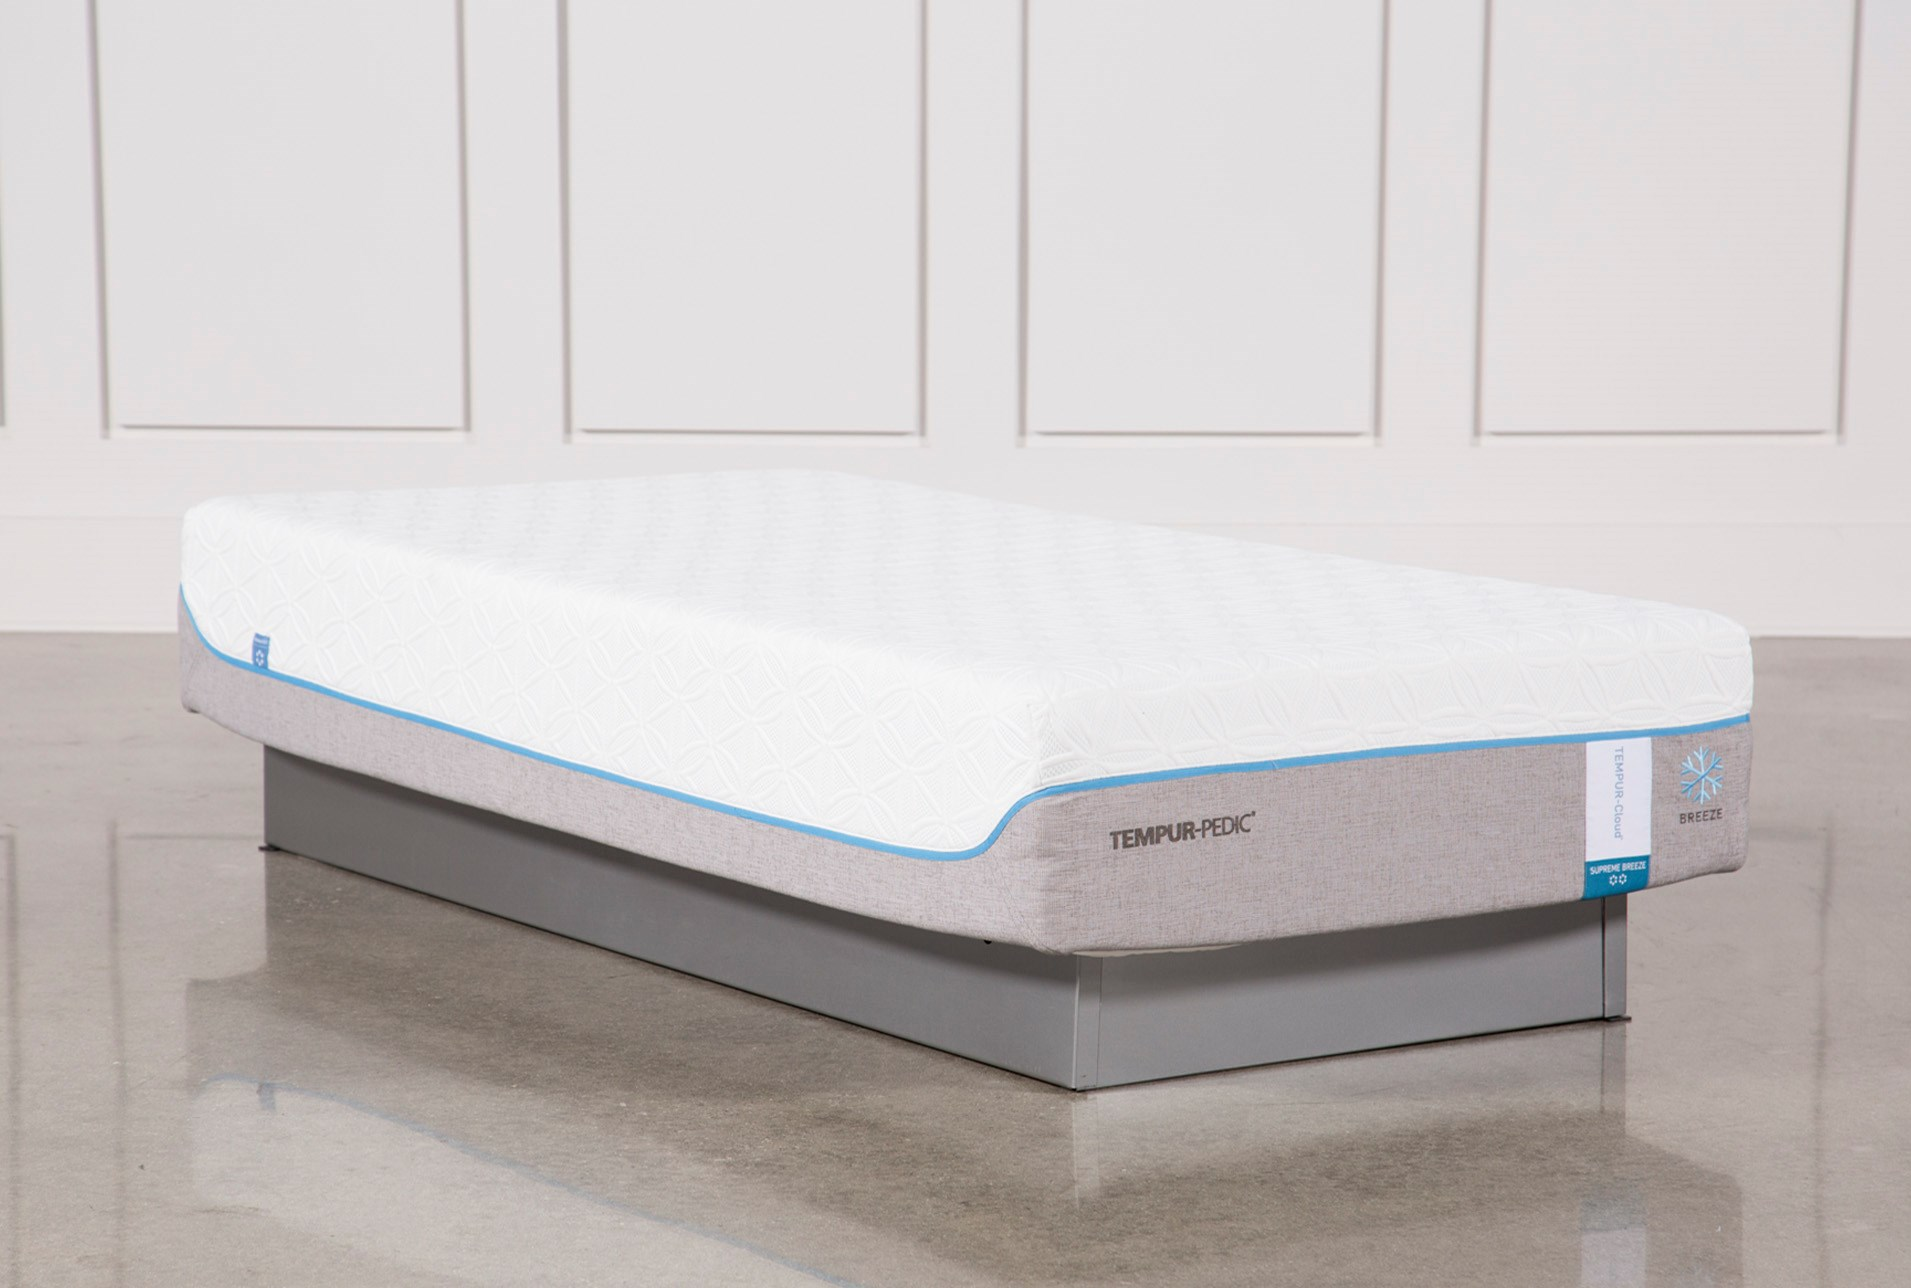 Tempur Pedic Cloud Supreme Breeze 2 0 Twin Extra Long Mattress Qty 1 Has Been Successfully Added To Your Cart